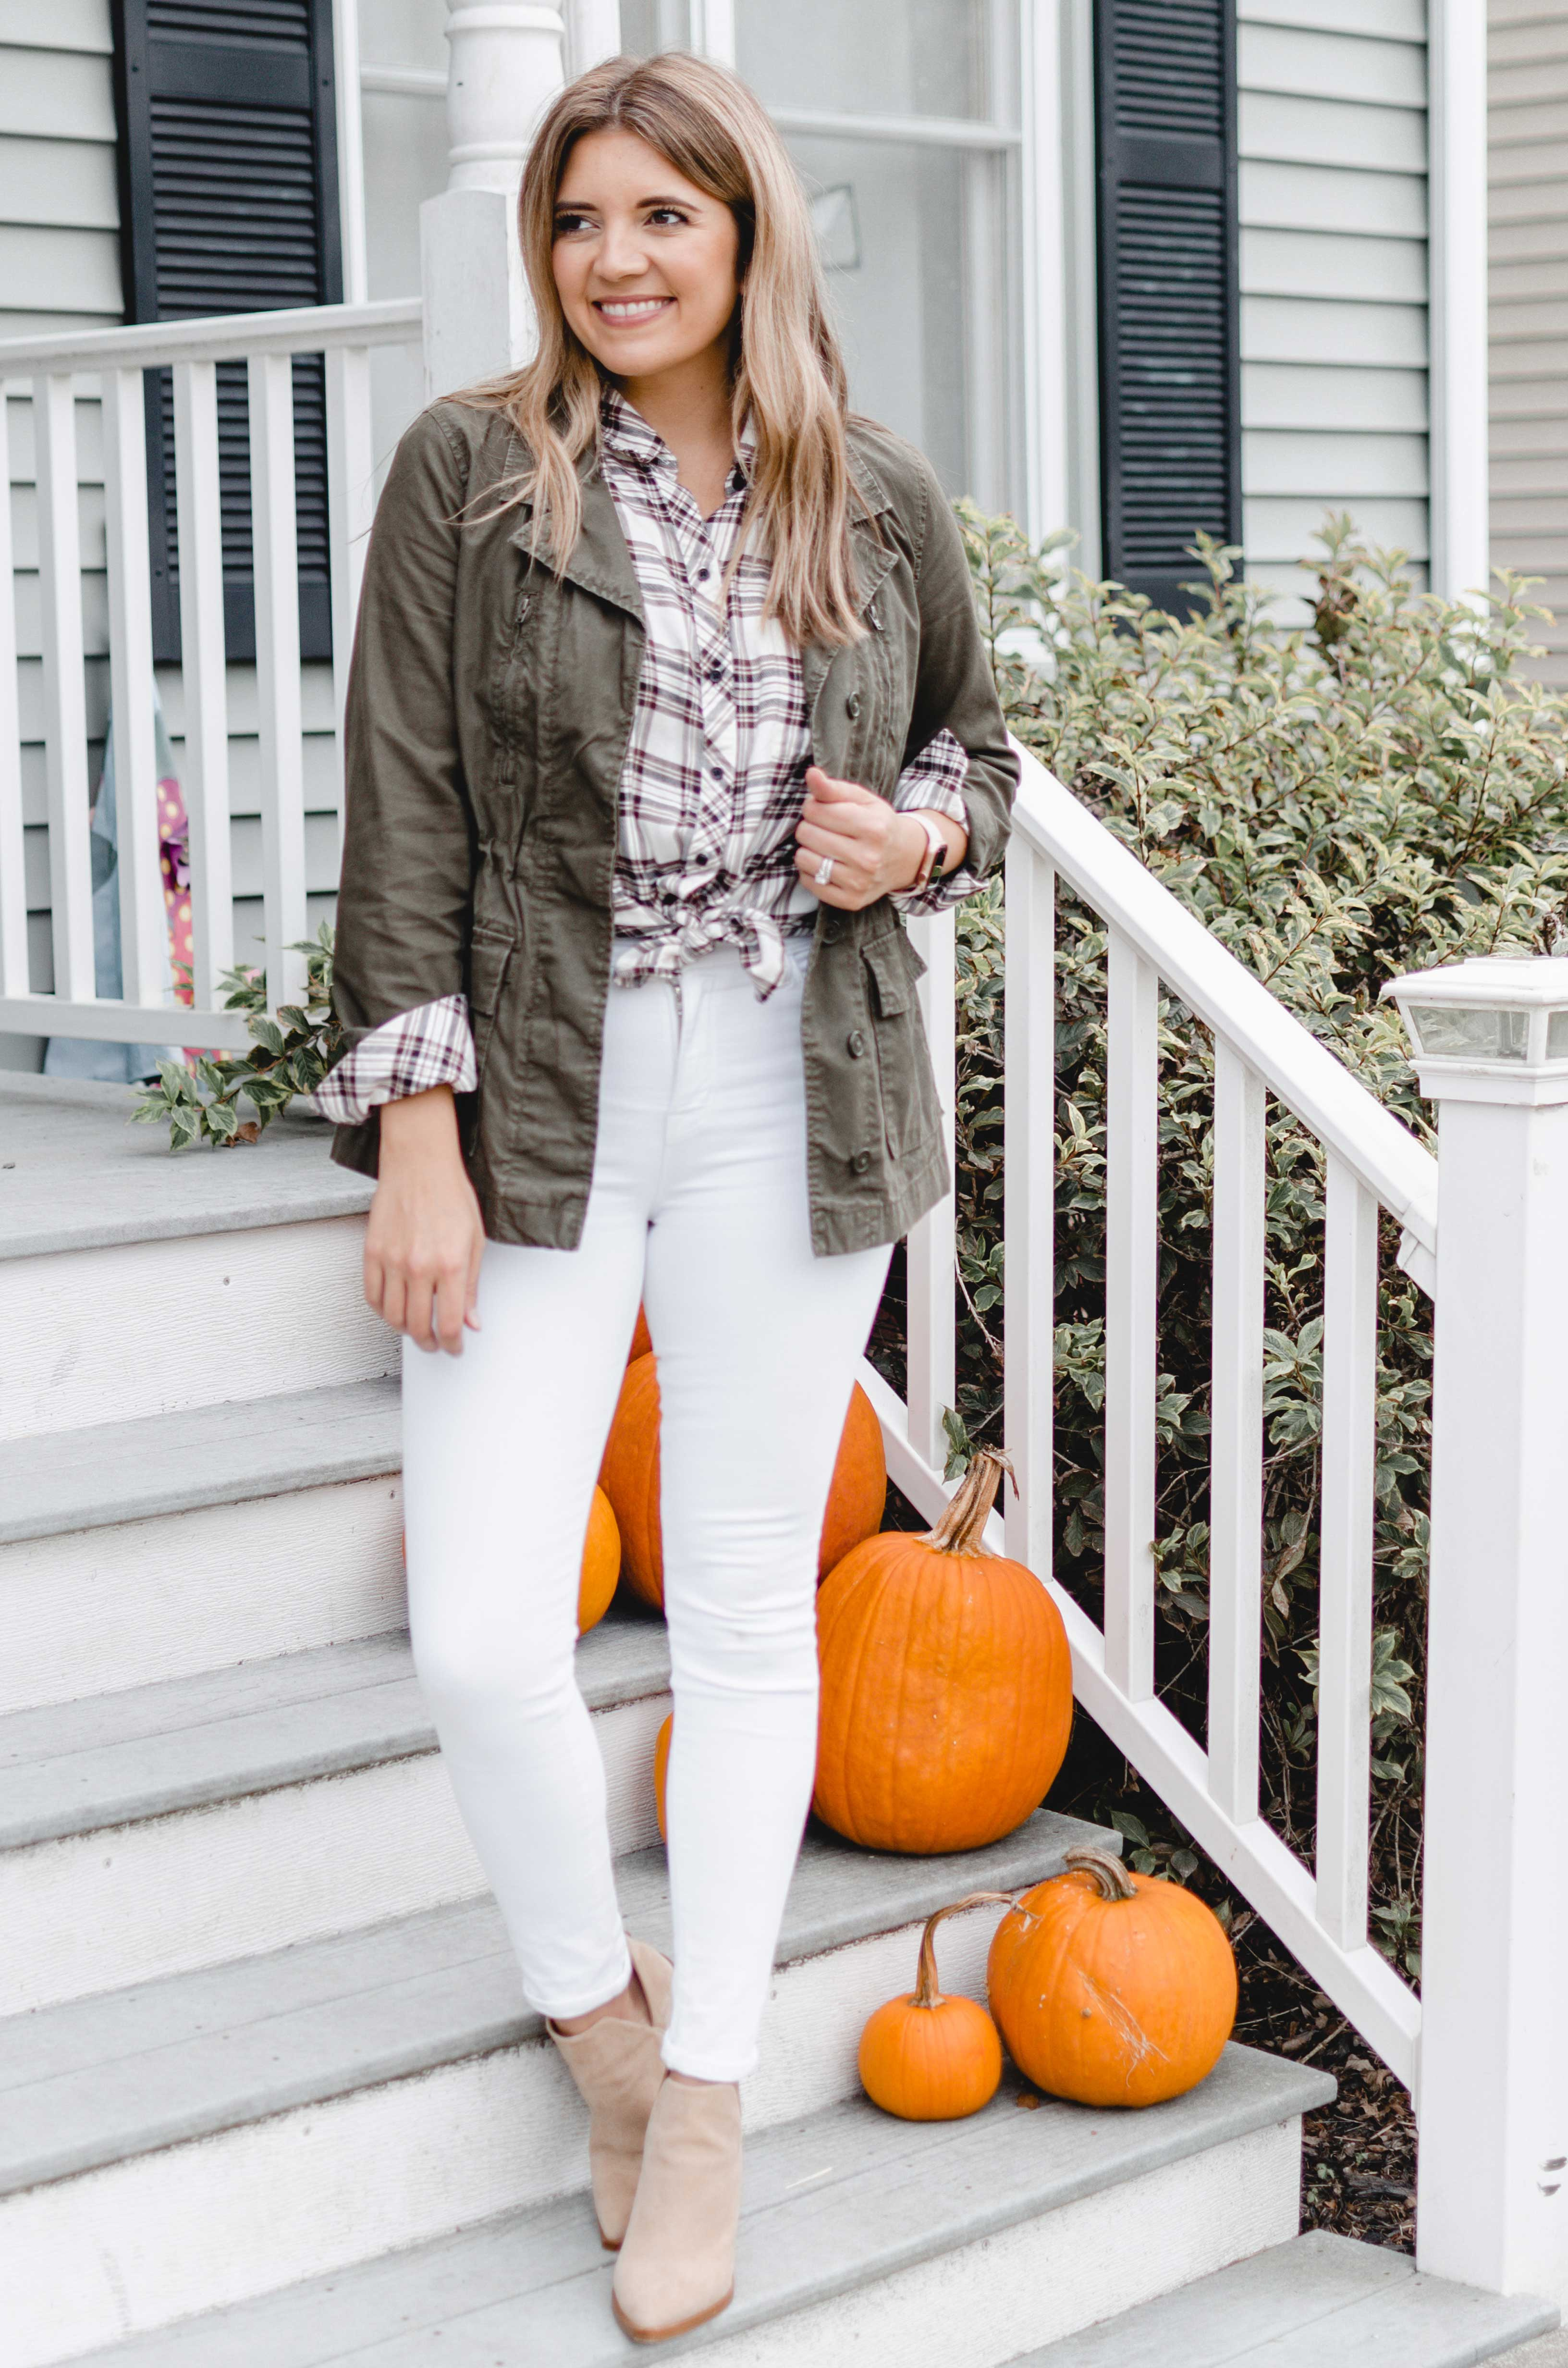 Virginia blogger, Lauren Dix, shares seven utility jacket outfits for fall! See all the ways to wear your cargo jacket dressed up or down!